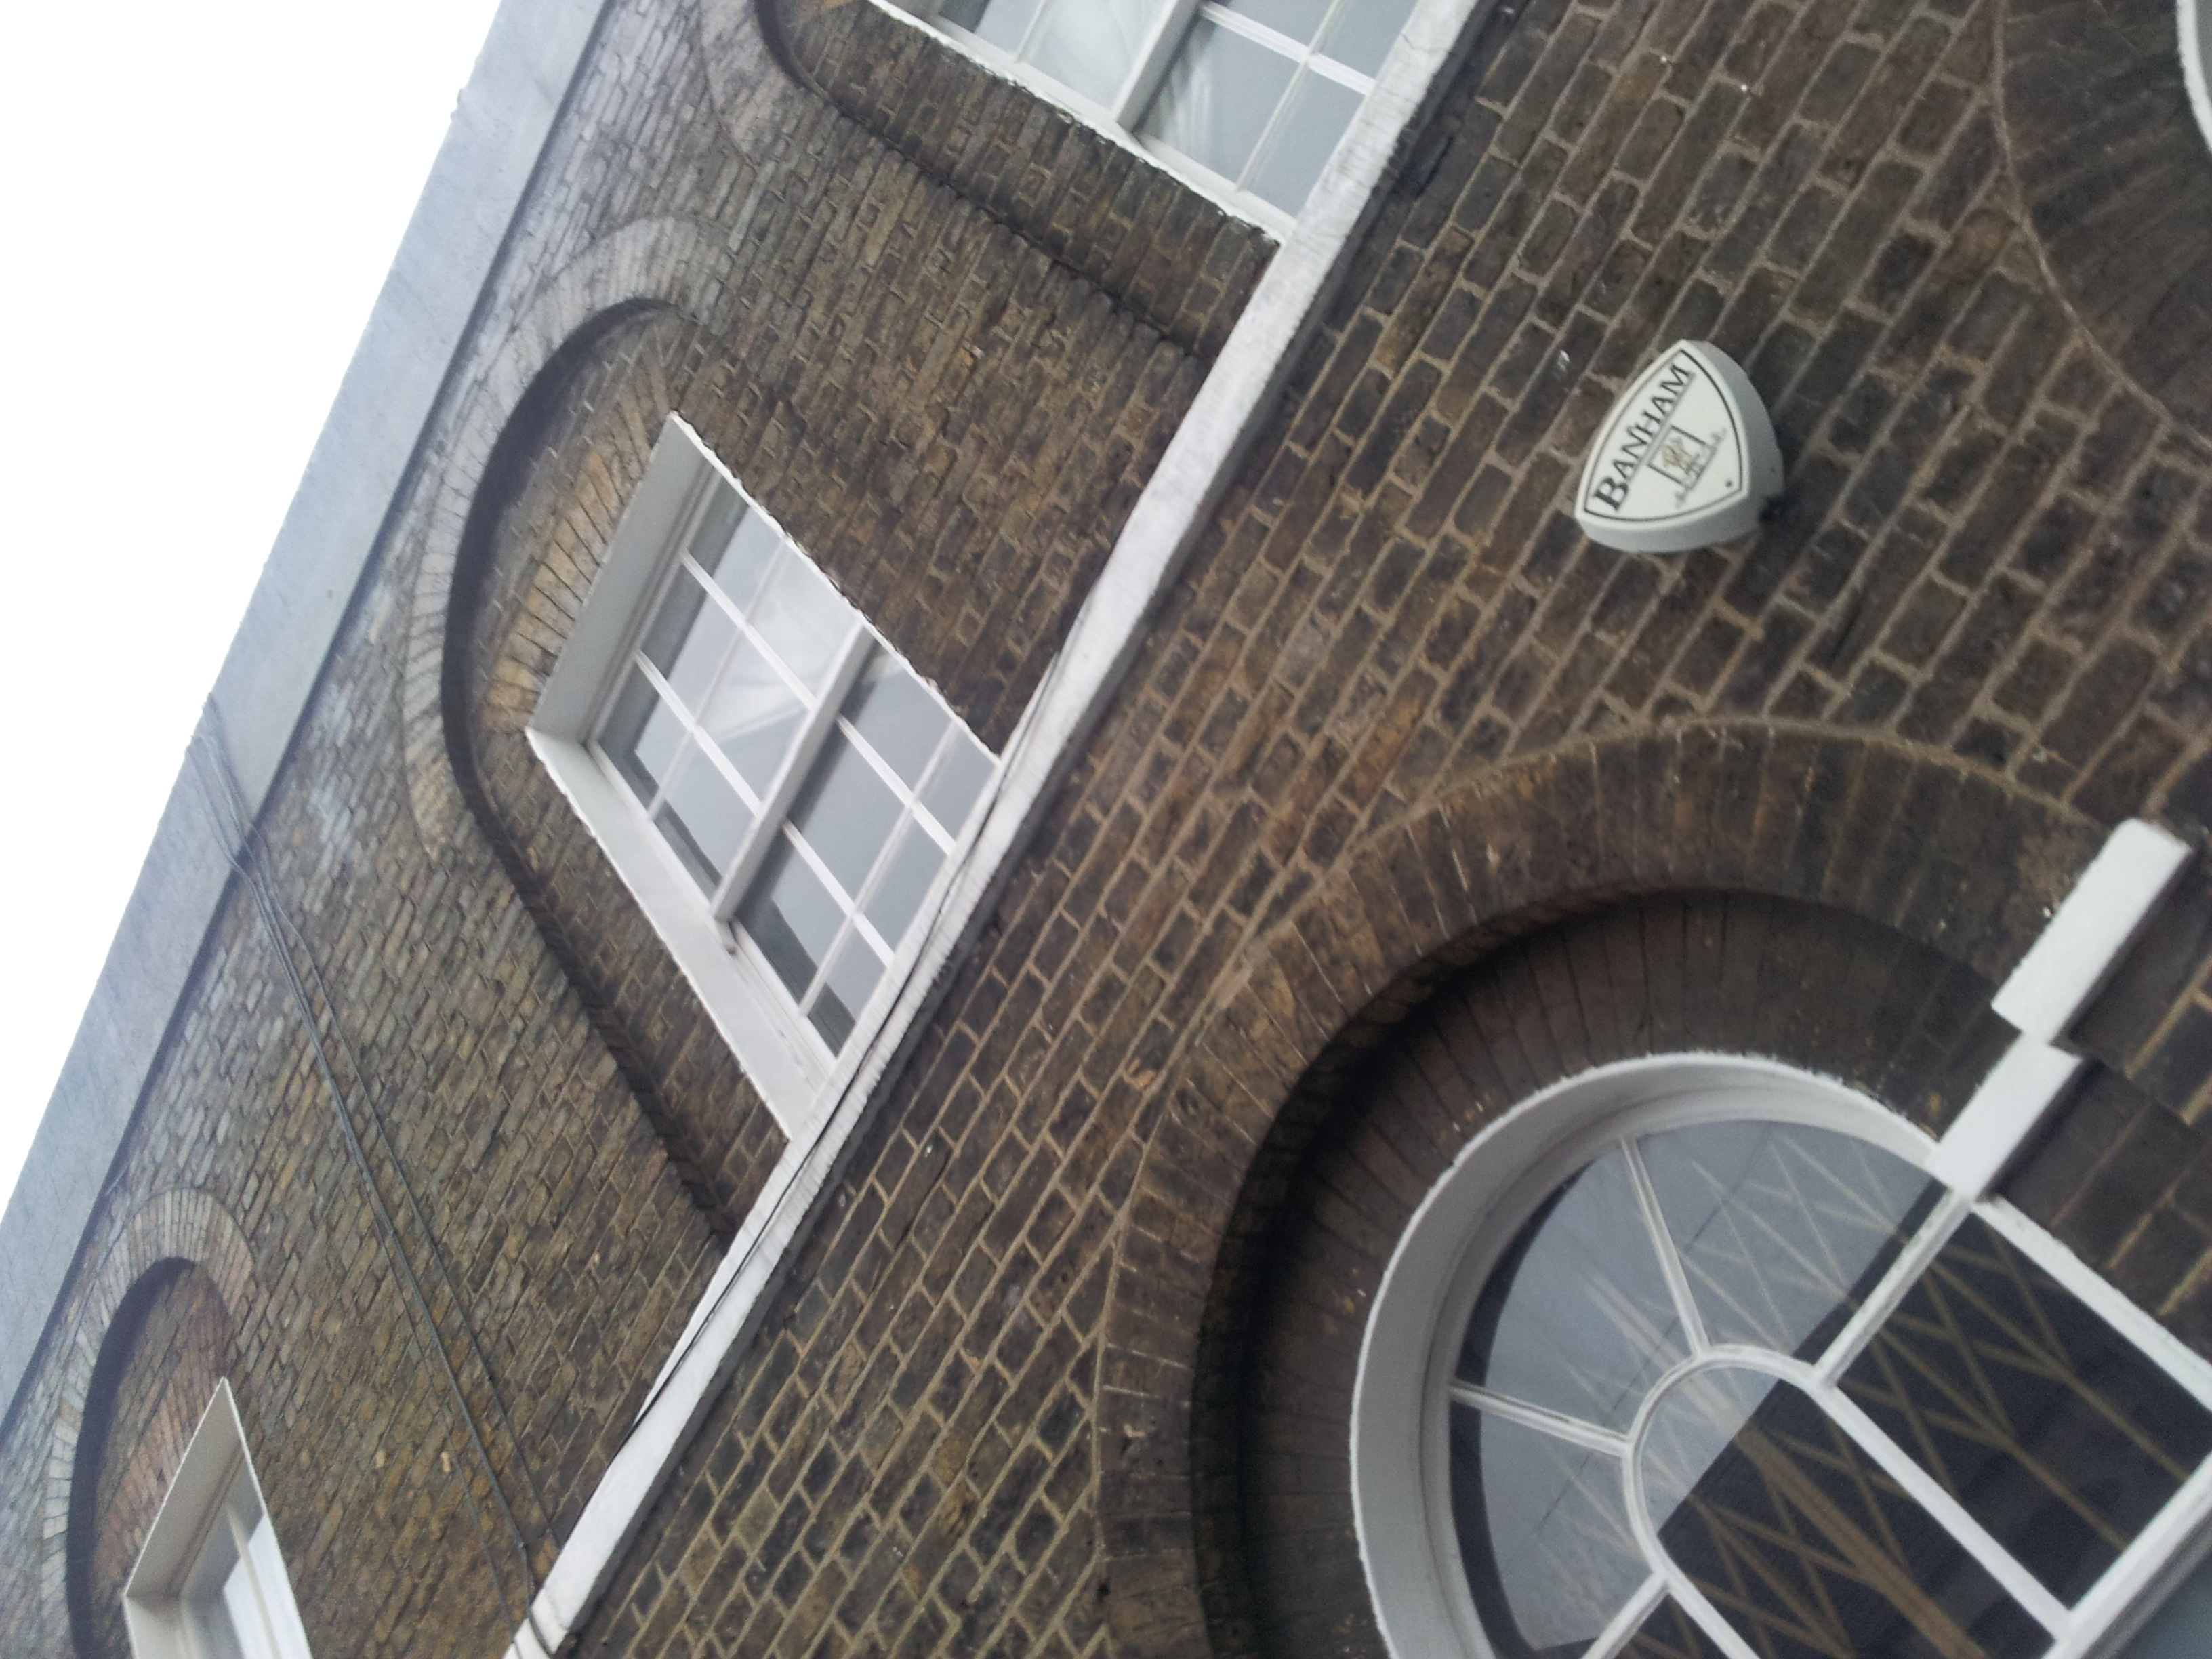 Listed Building, Clapham